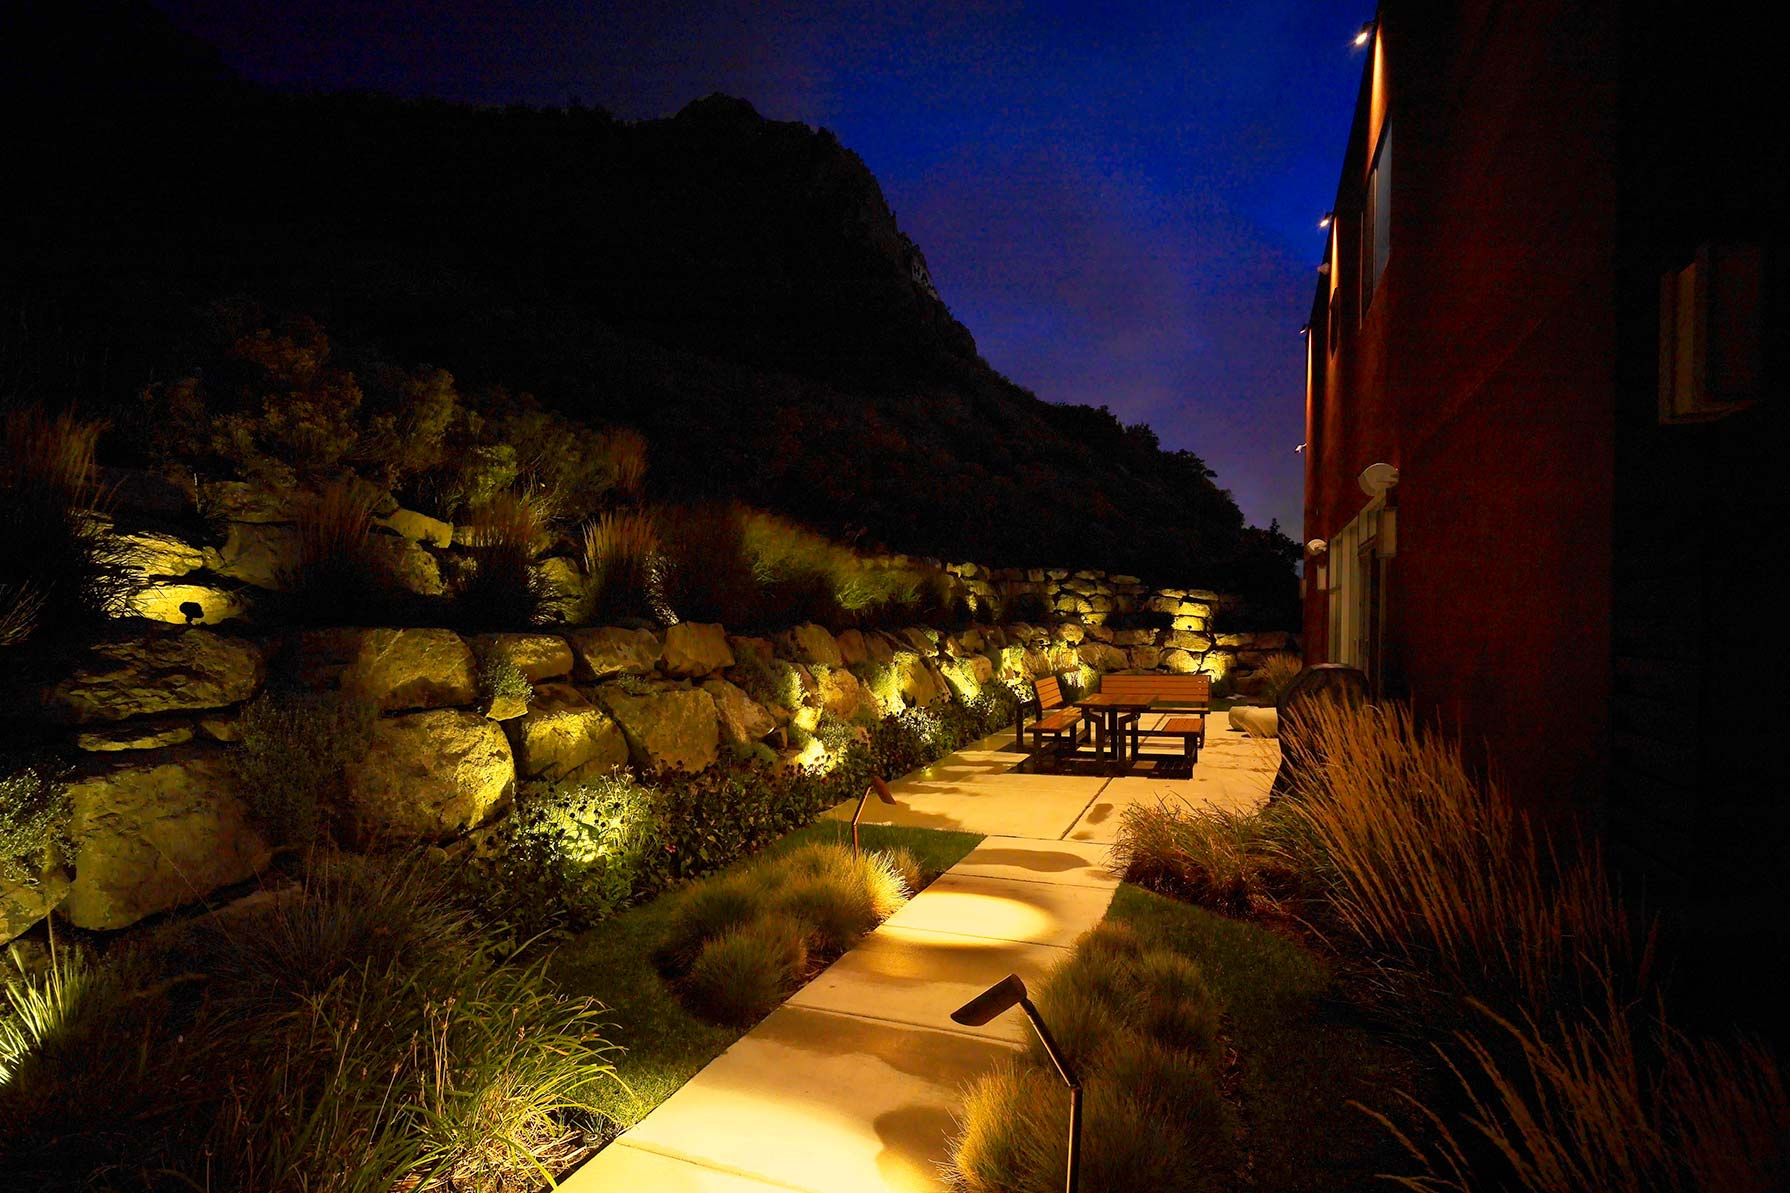 ... Park Road Lighting Luces Check Out Our Gallery ... & Outdoor Park Lighting - Outdoor Lighting Ideas